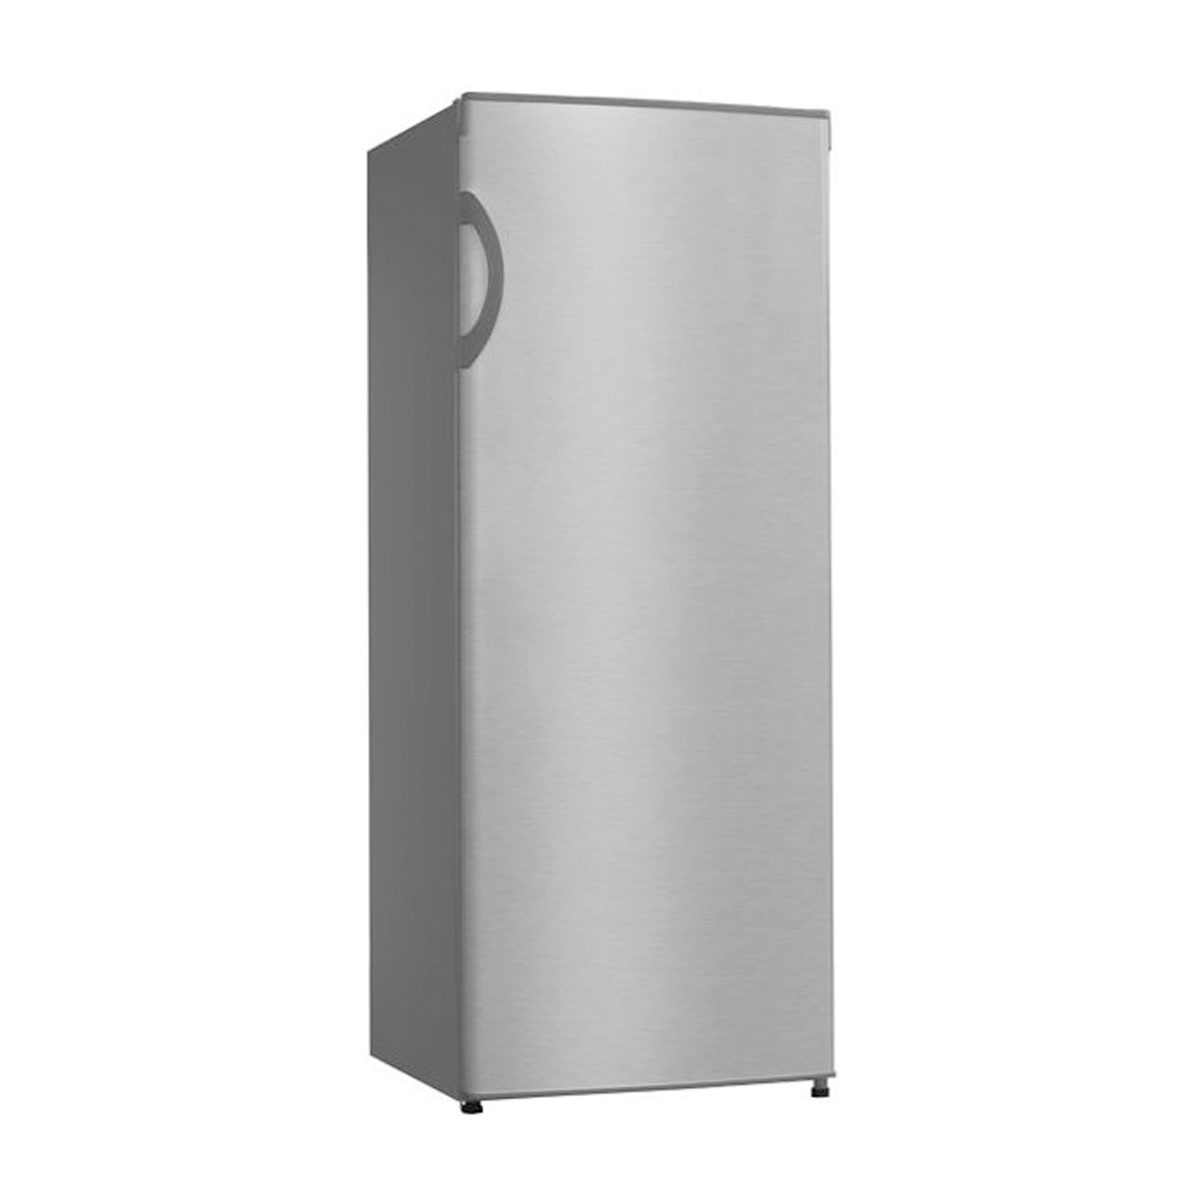 Esatto 237L Upright Fridge Stainless Steel EUL237S